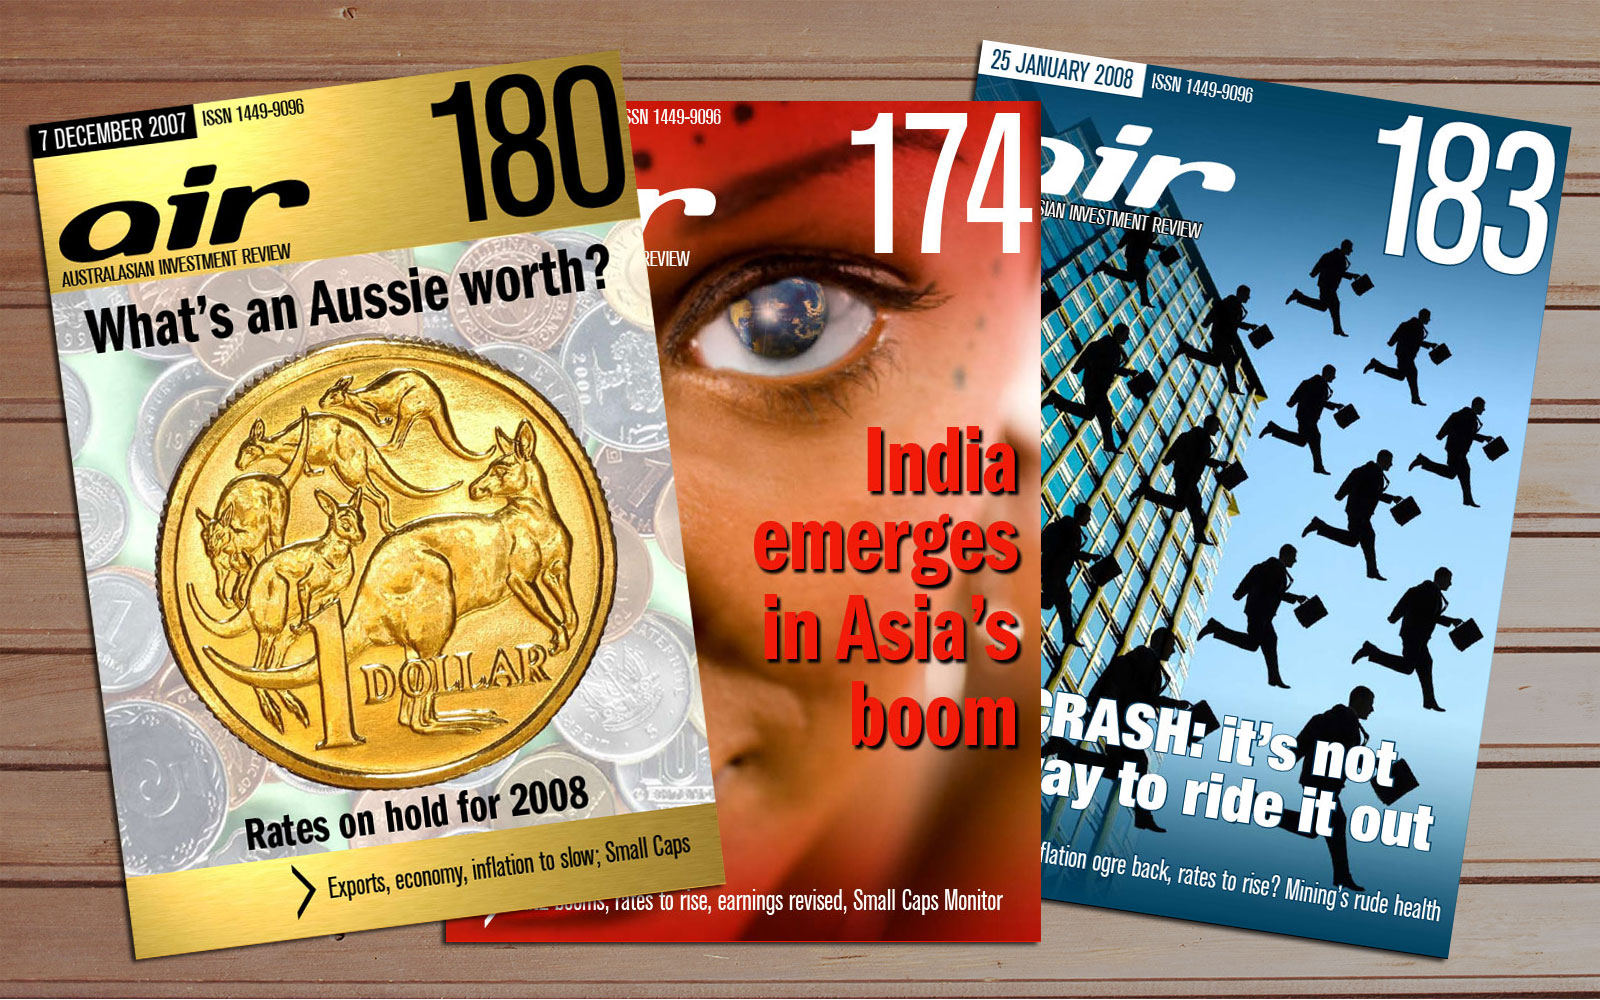 Australian Investment Review